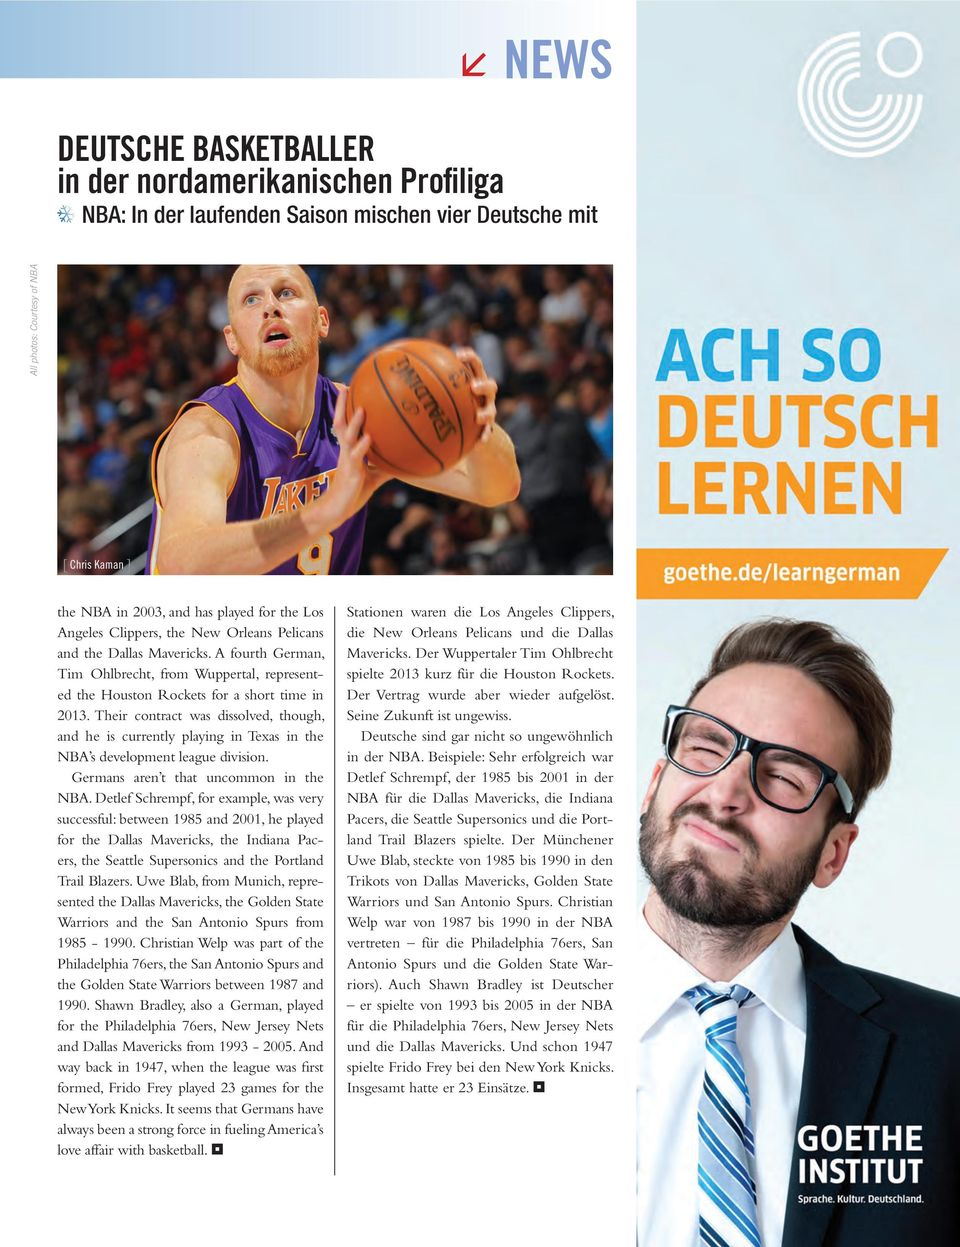 Their contract was dissolved, though, and he is currently playing in Texas in the NBA s development league division. Germans aren t that uncommon in the NBA.